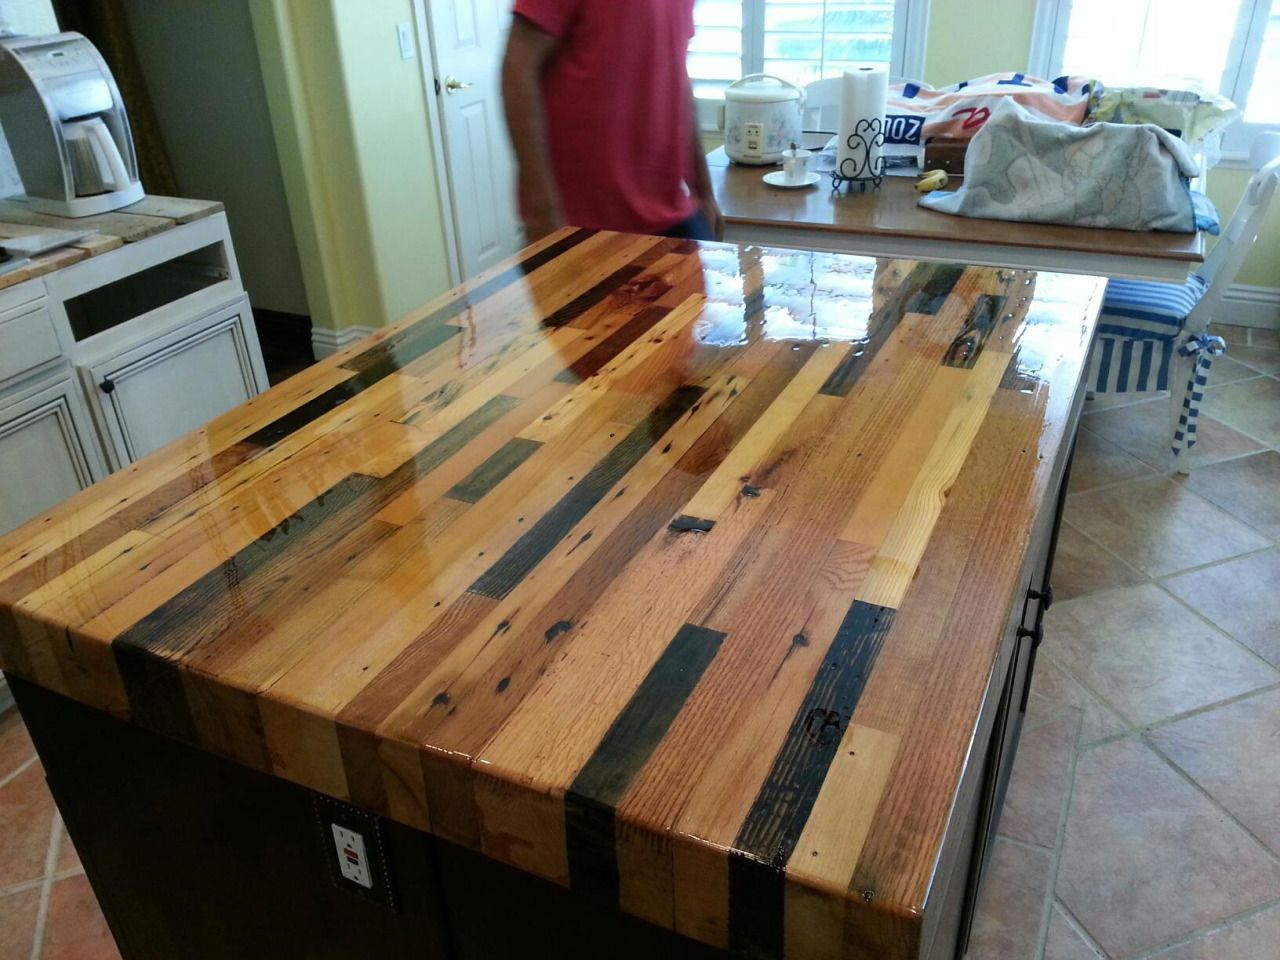 Reclaimed Butcher Block reclaimed wood island - google search | decor ideas | pinterest